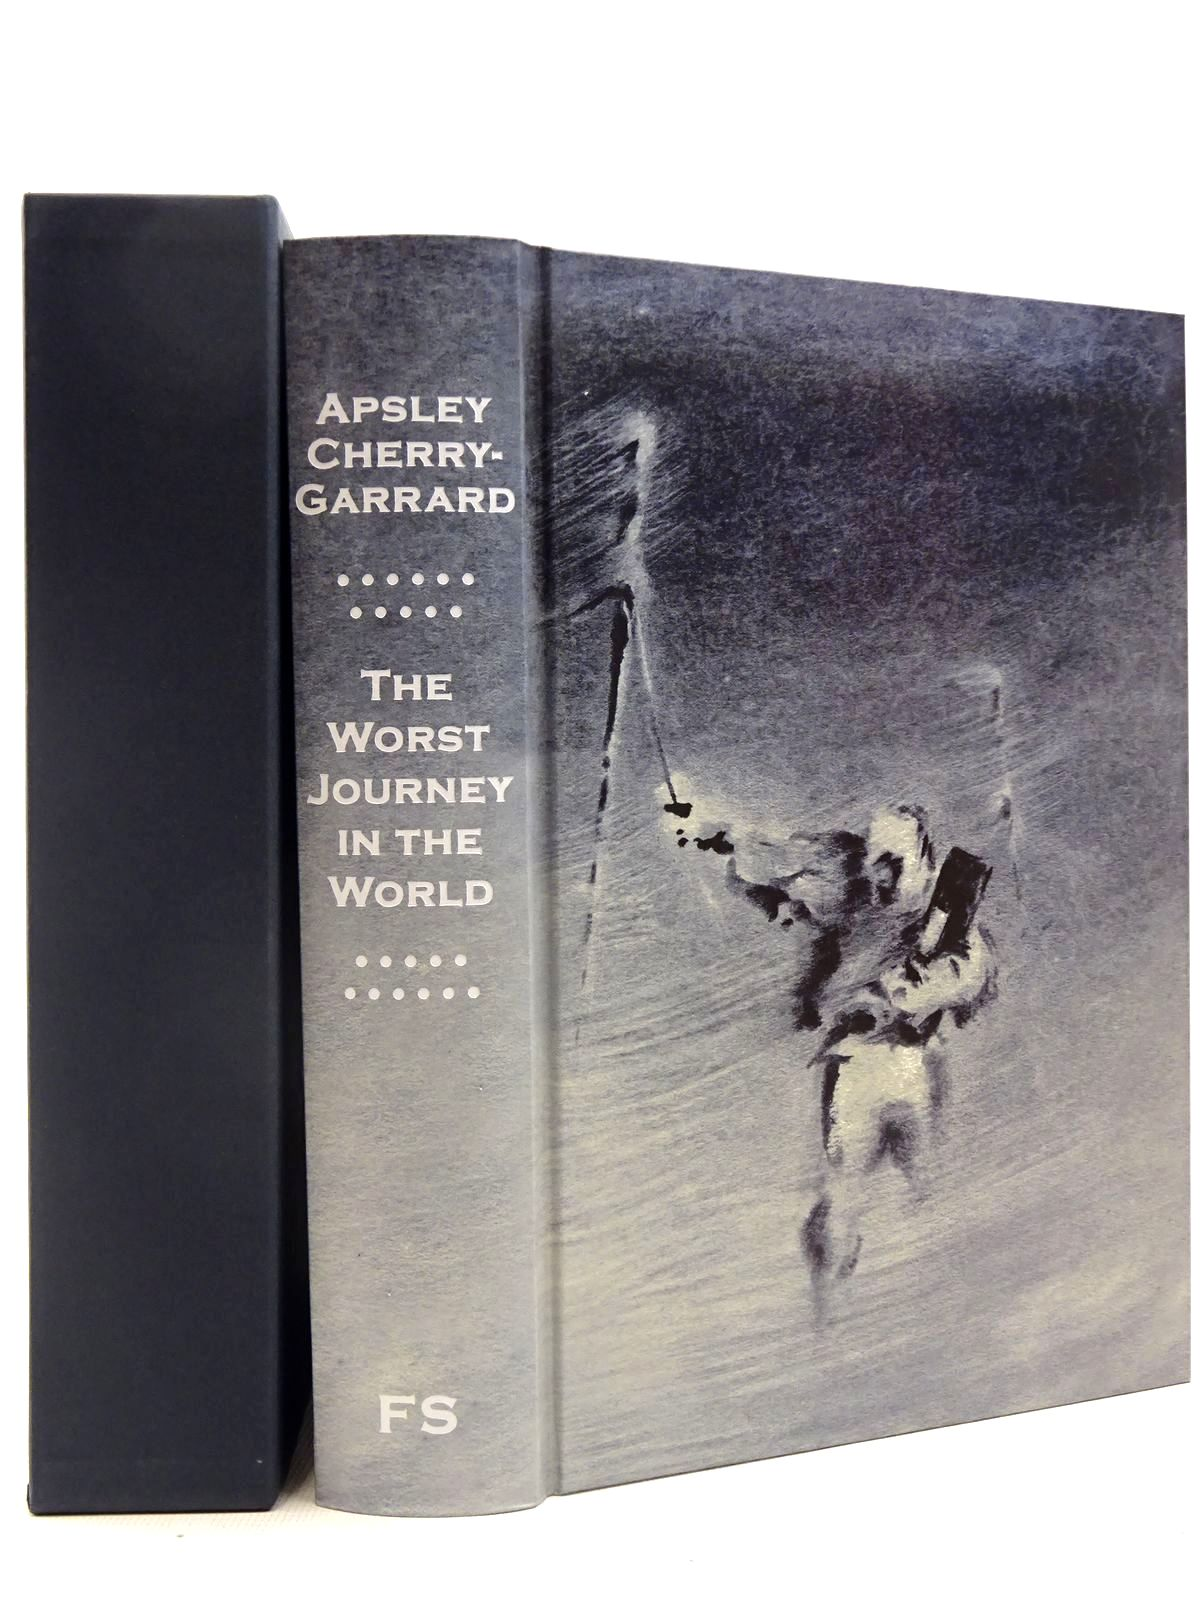 Photo of THE WORST JOURNEY IN THE WORLD ANTARCTIC 1910-1913 written by Cherry-Garrard, Apsley published by Folio Society (STOCK CODE: 2129228)  for sale by Stella & Rose's Books